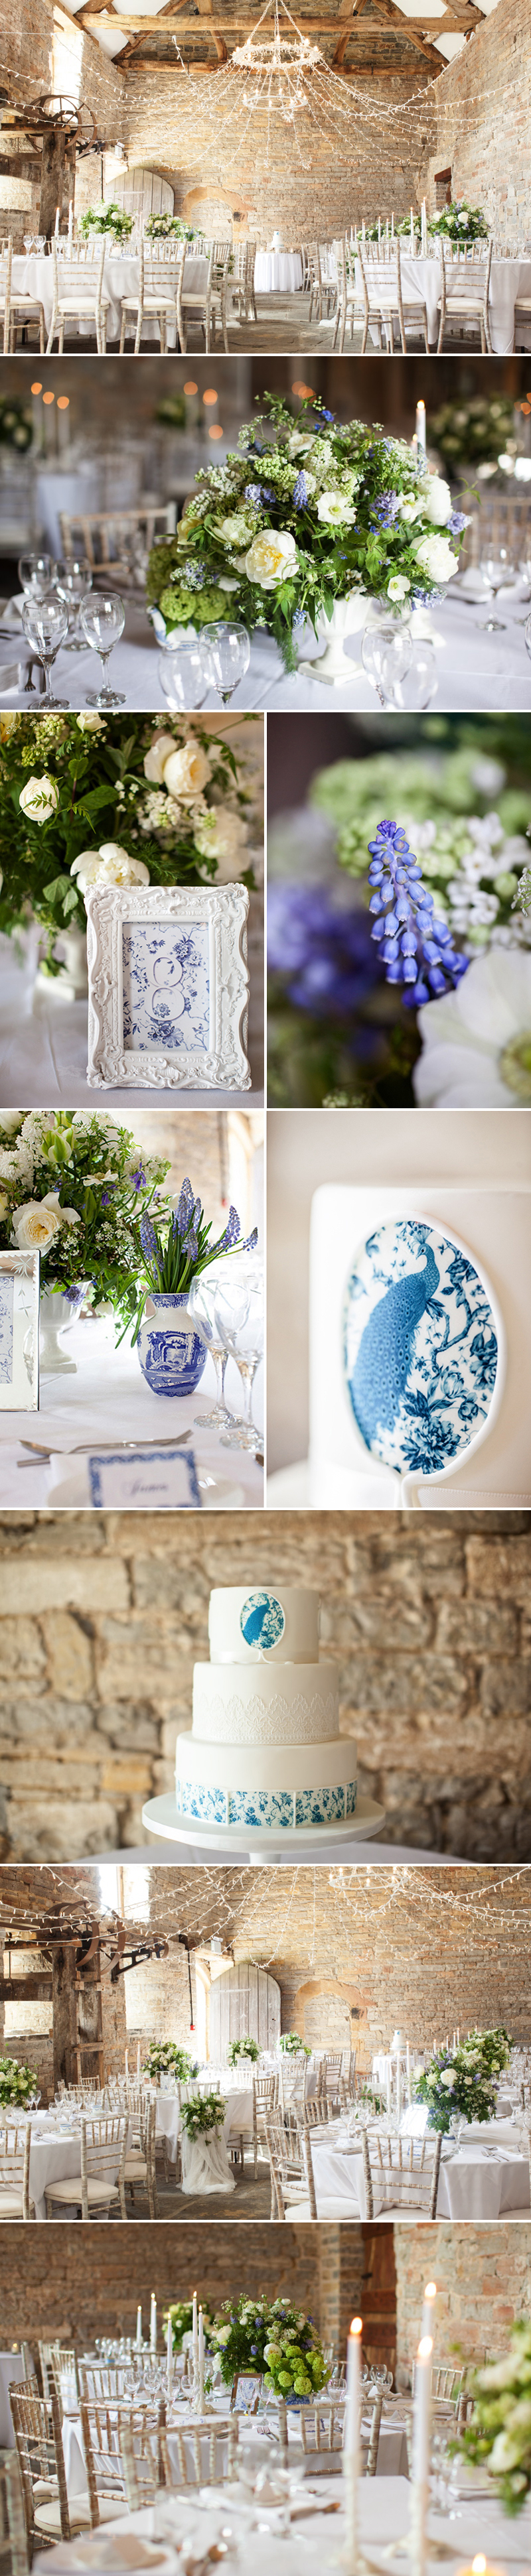 rustic-romance-blue-spring-styled-shoot-almonry-barn-kerry-bartlett-photography-coco-wedding-venues-002